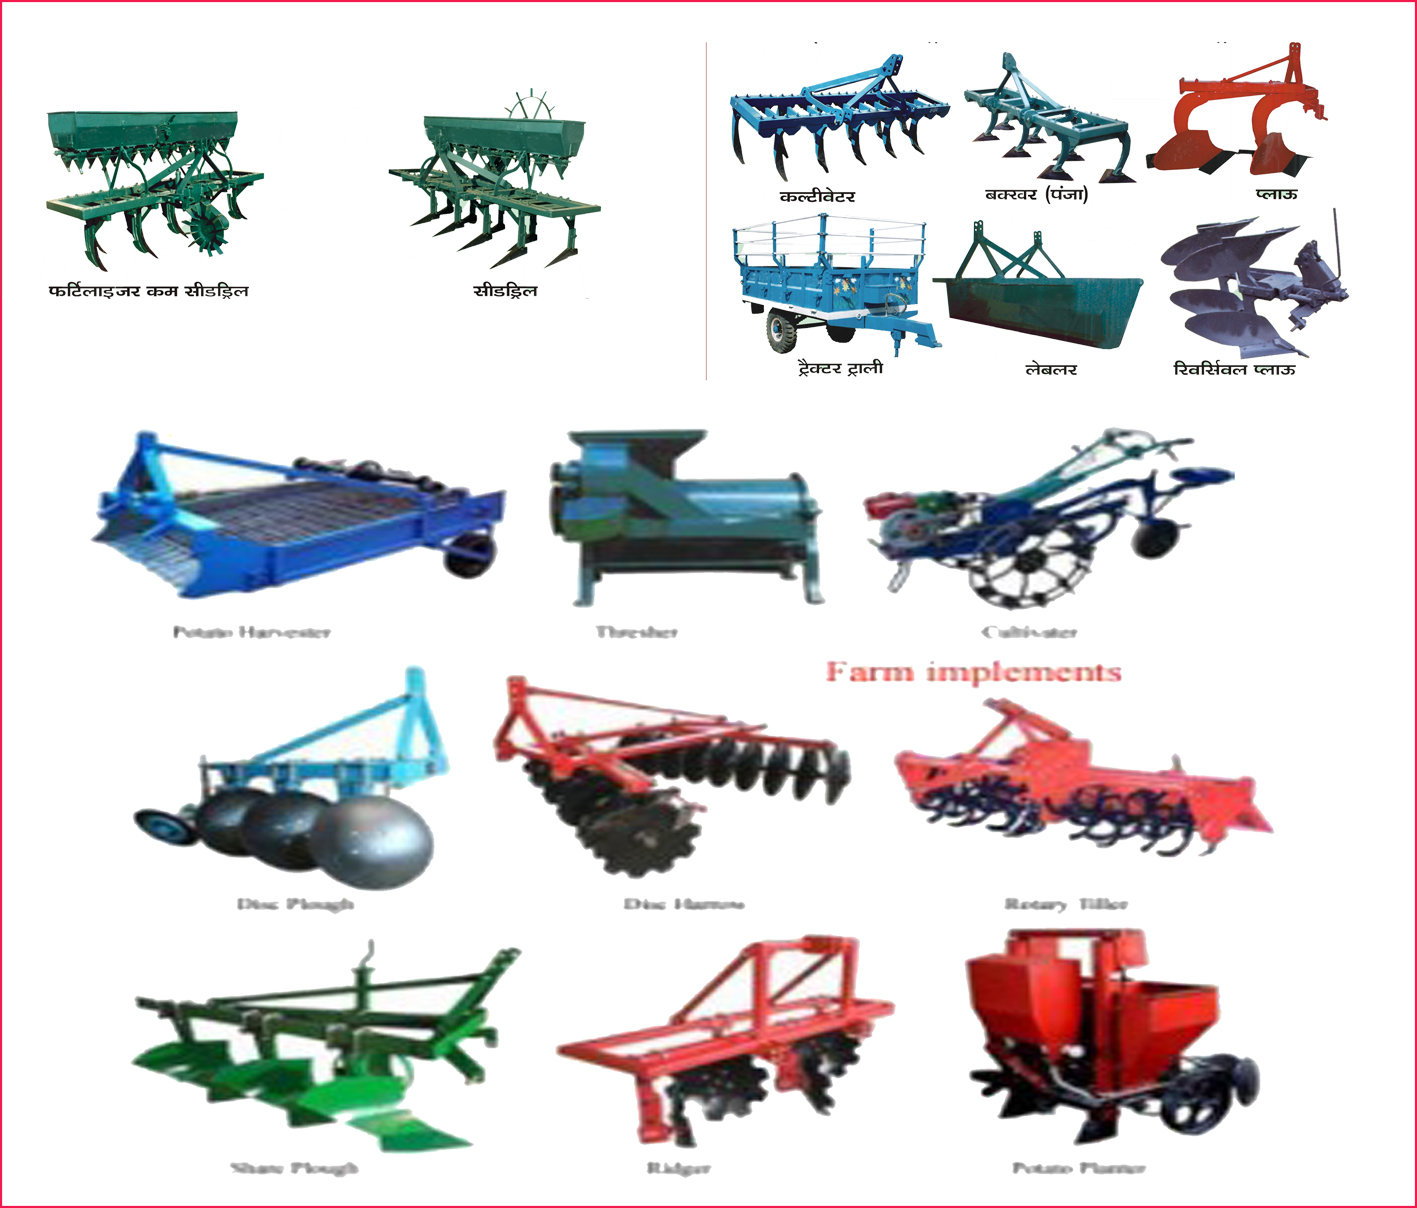 Name Of Parts Farm Implements : Thailand agricultural equipments market farm